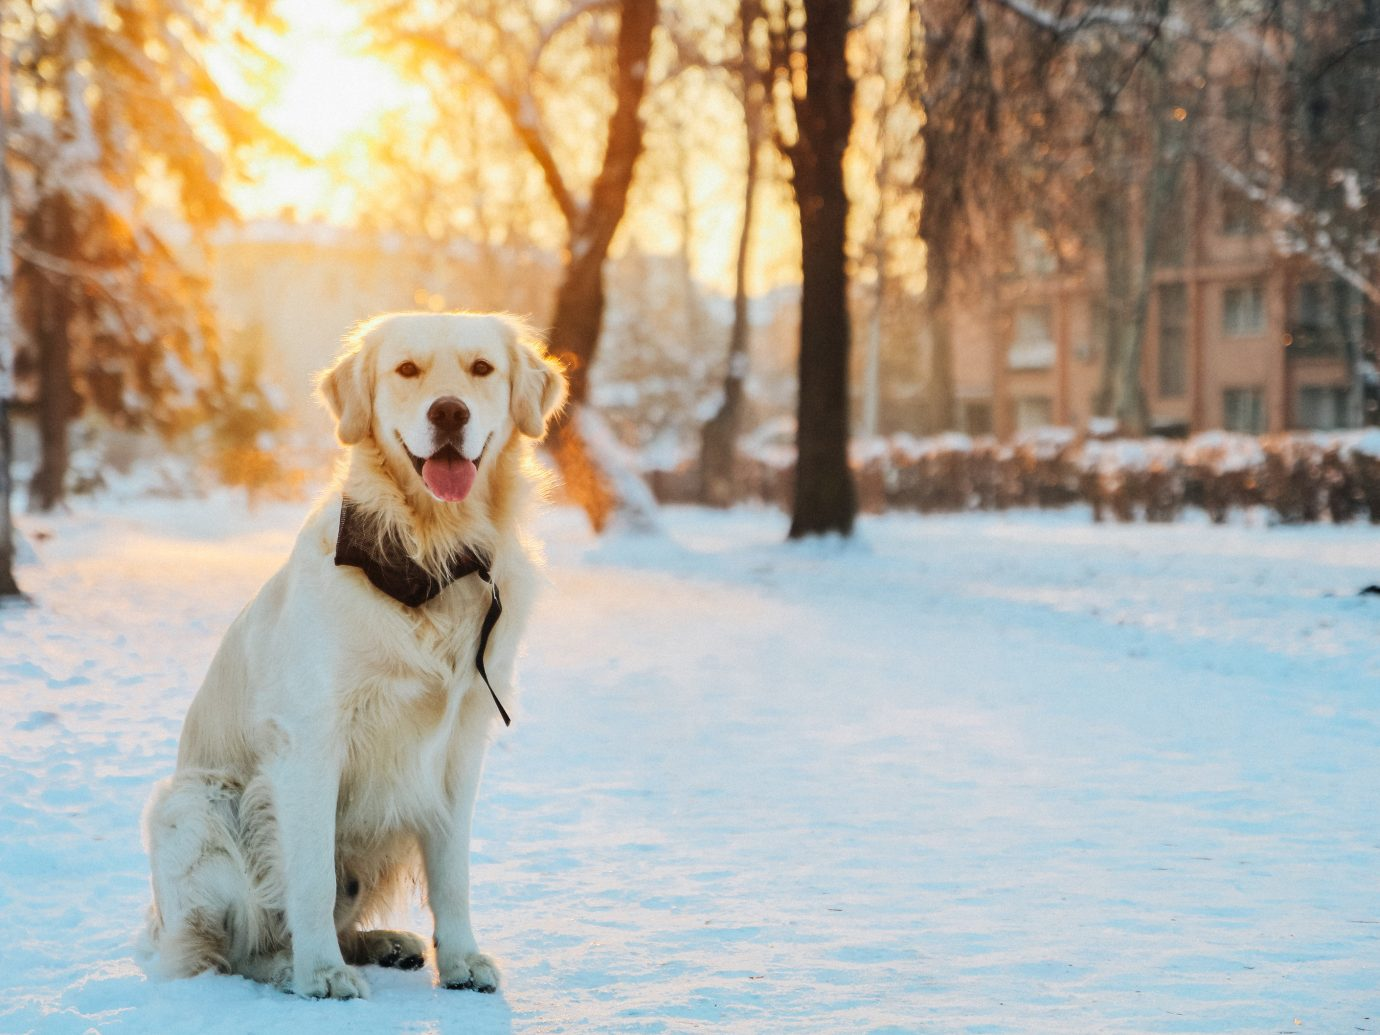 Hotels Dog outdoor tree snow mammal Winter golden retriever weather season dog like mammal retriever